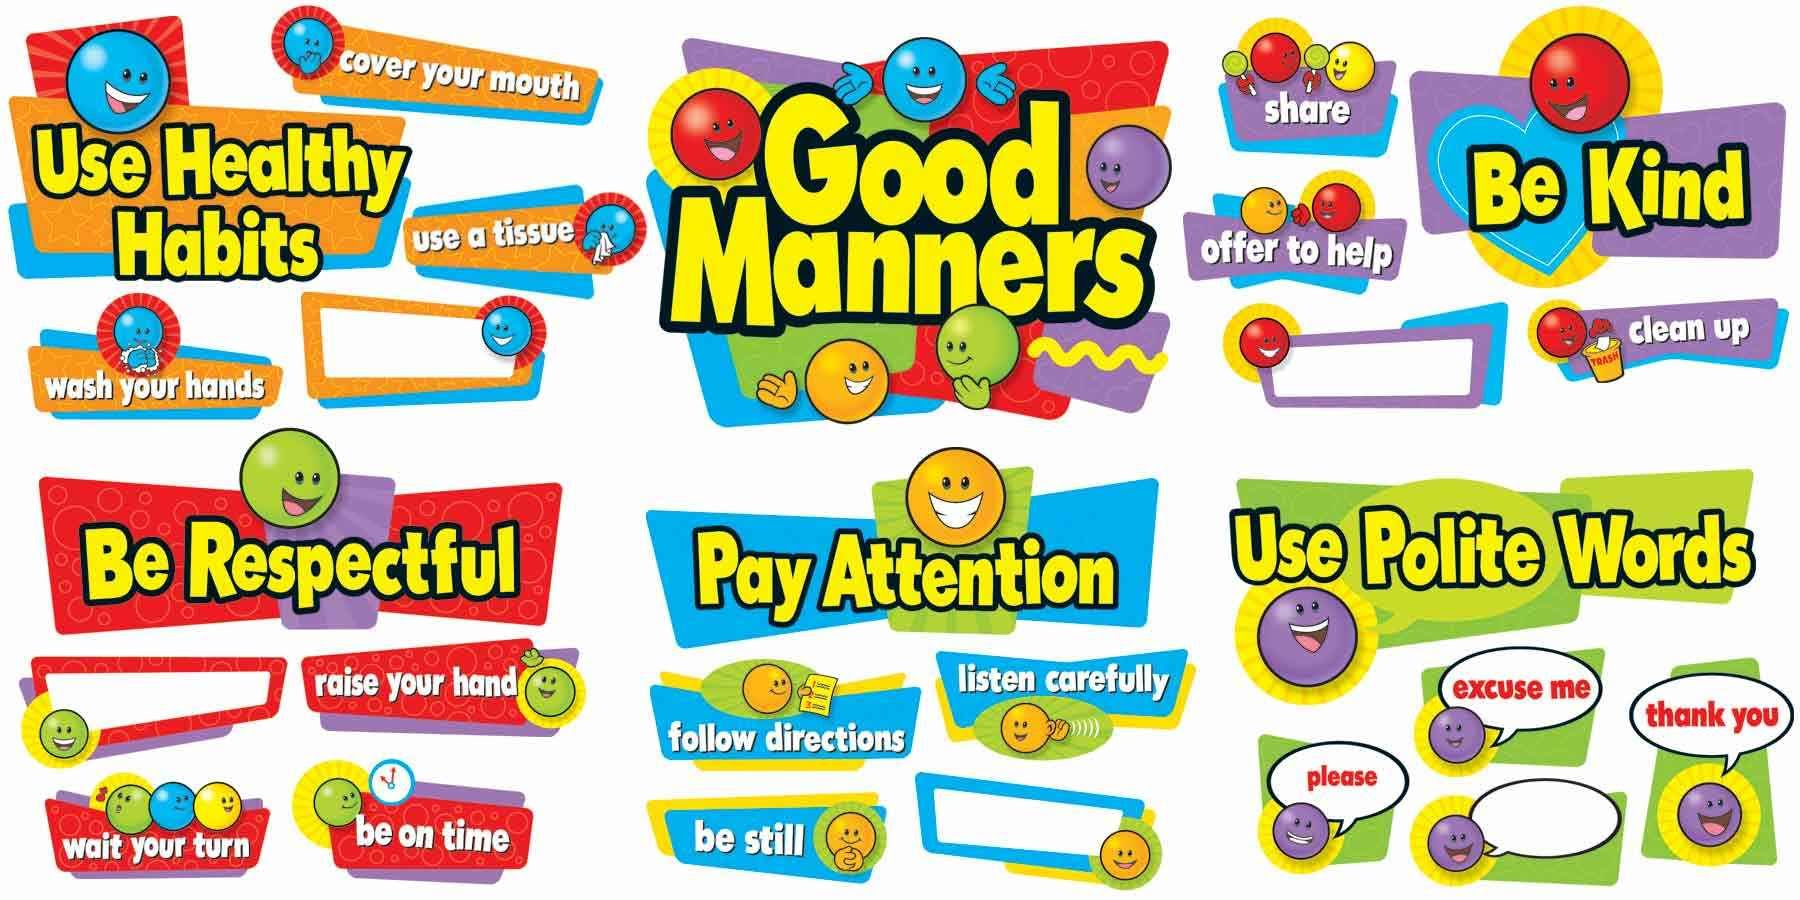 Worksheets Good Manners Worksheet worksheet on good manners lets have fun learning moral values manners